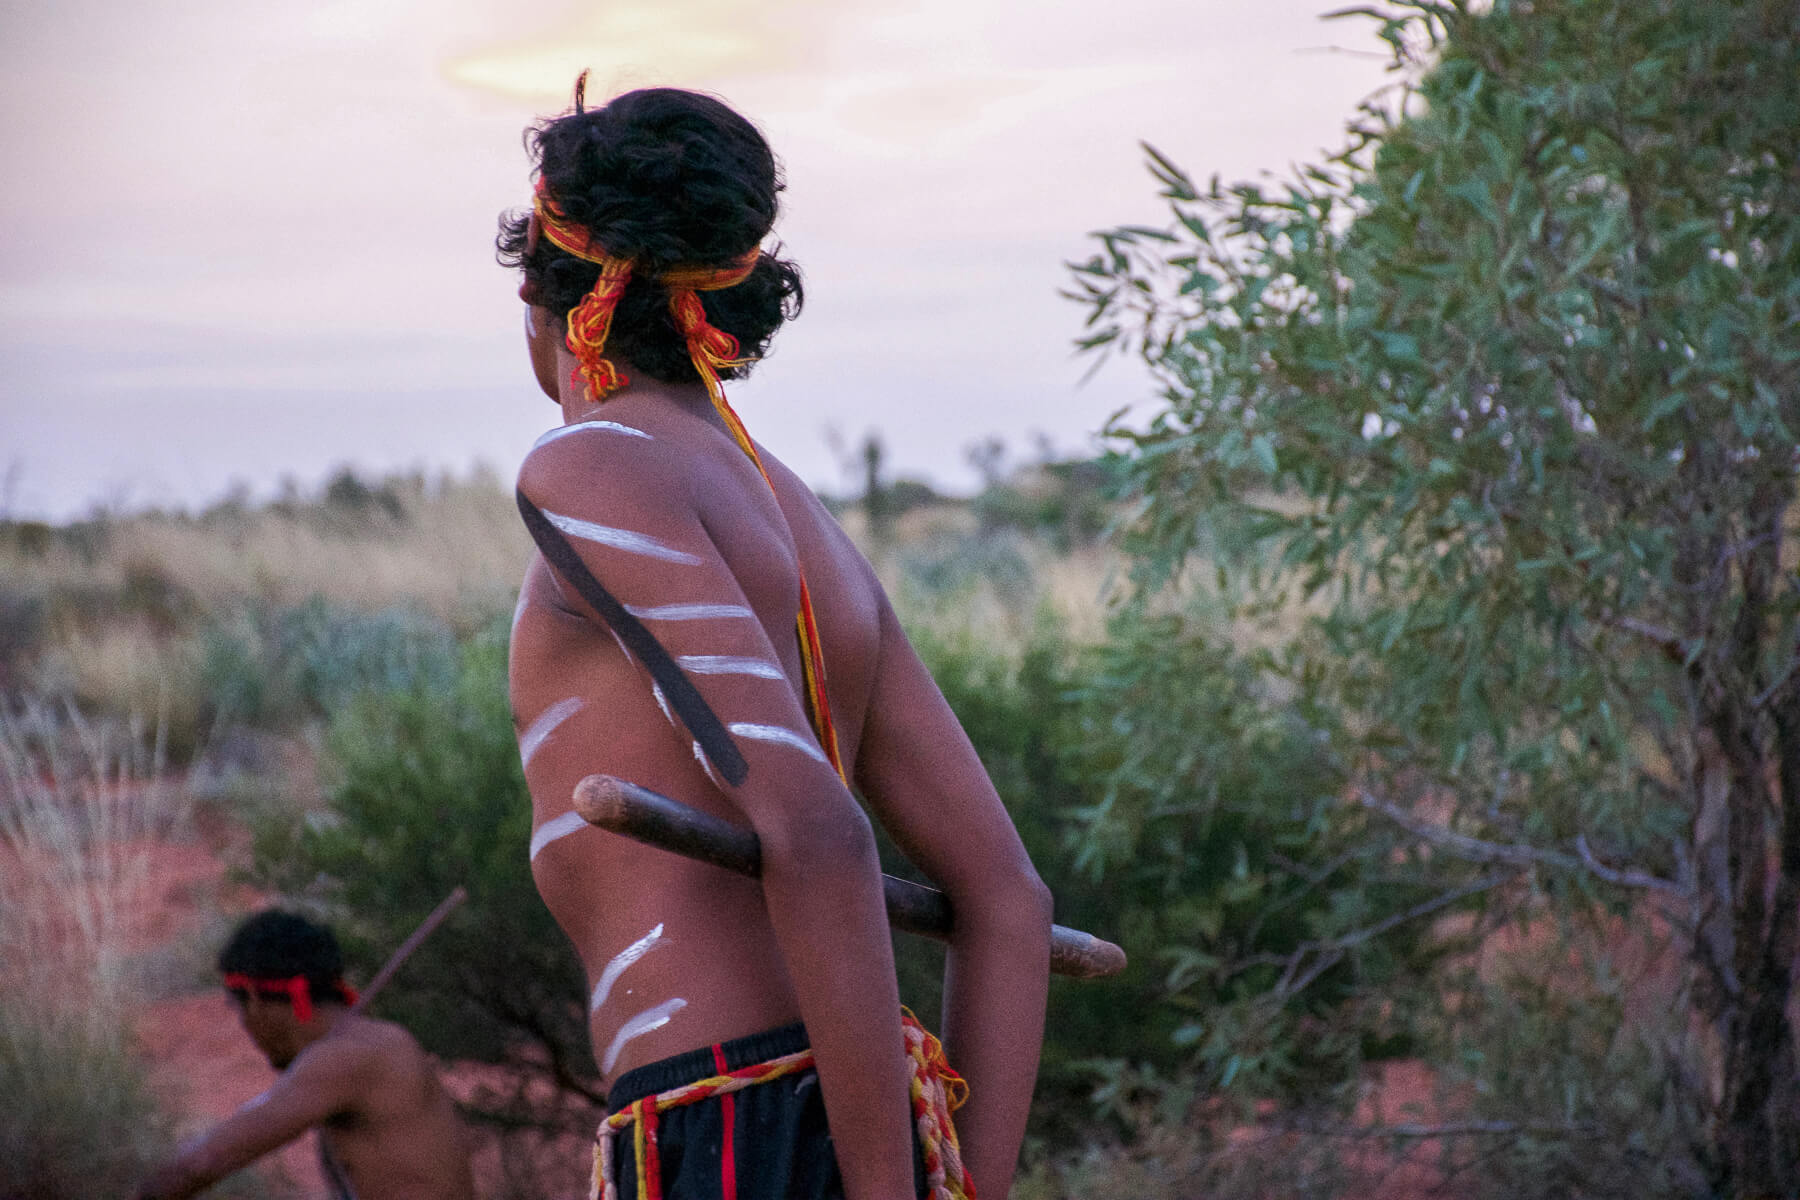 2 Indigenous dancers with body paint in the shrubbery